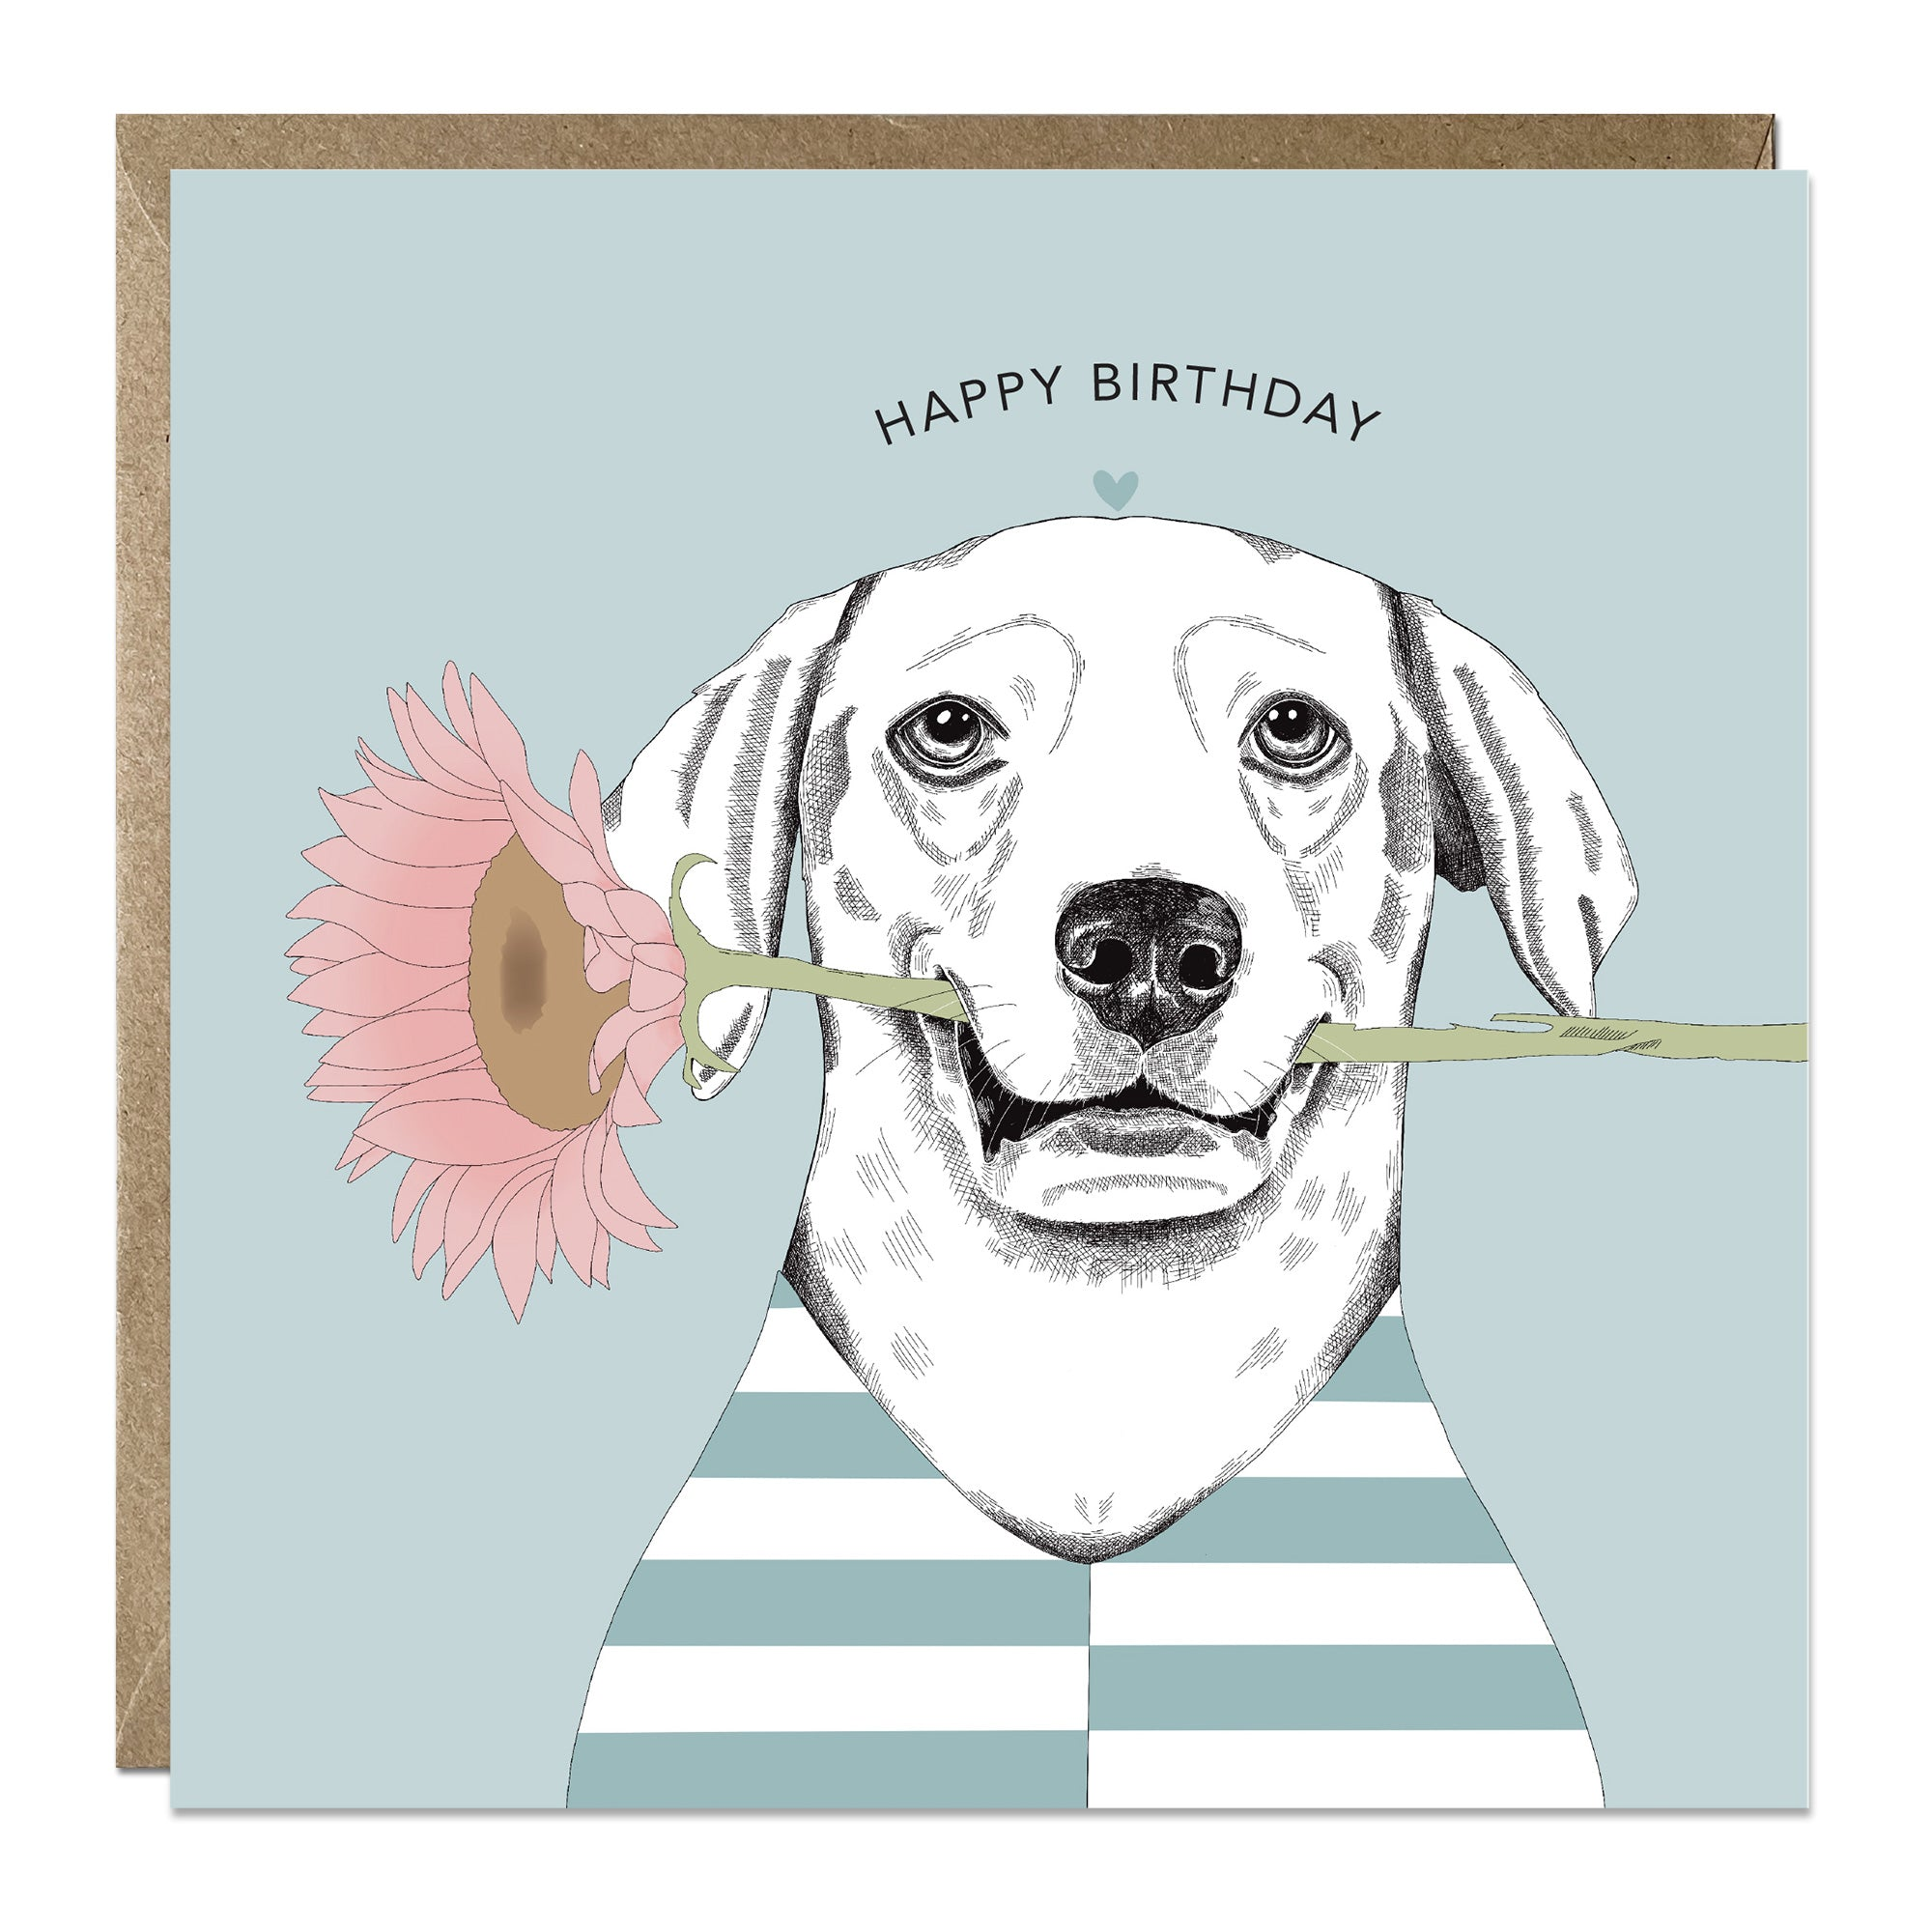 'Flower Dog' birthday card with Labrador